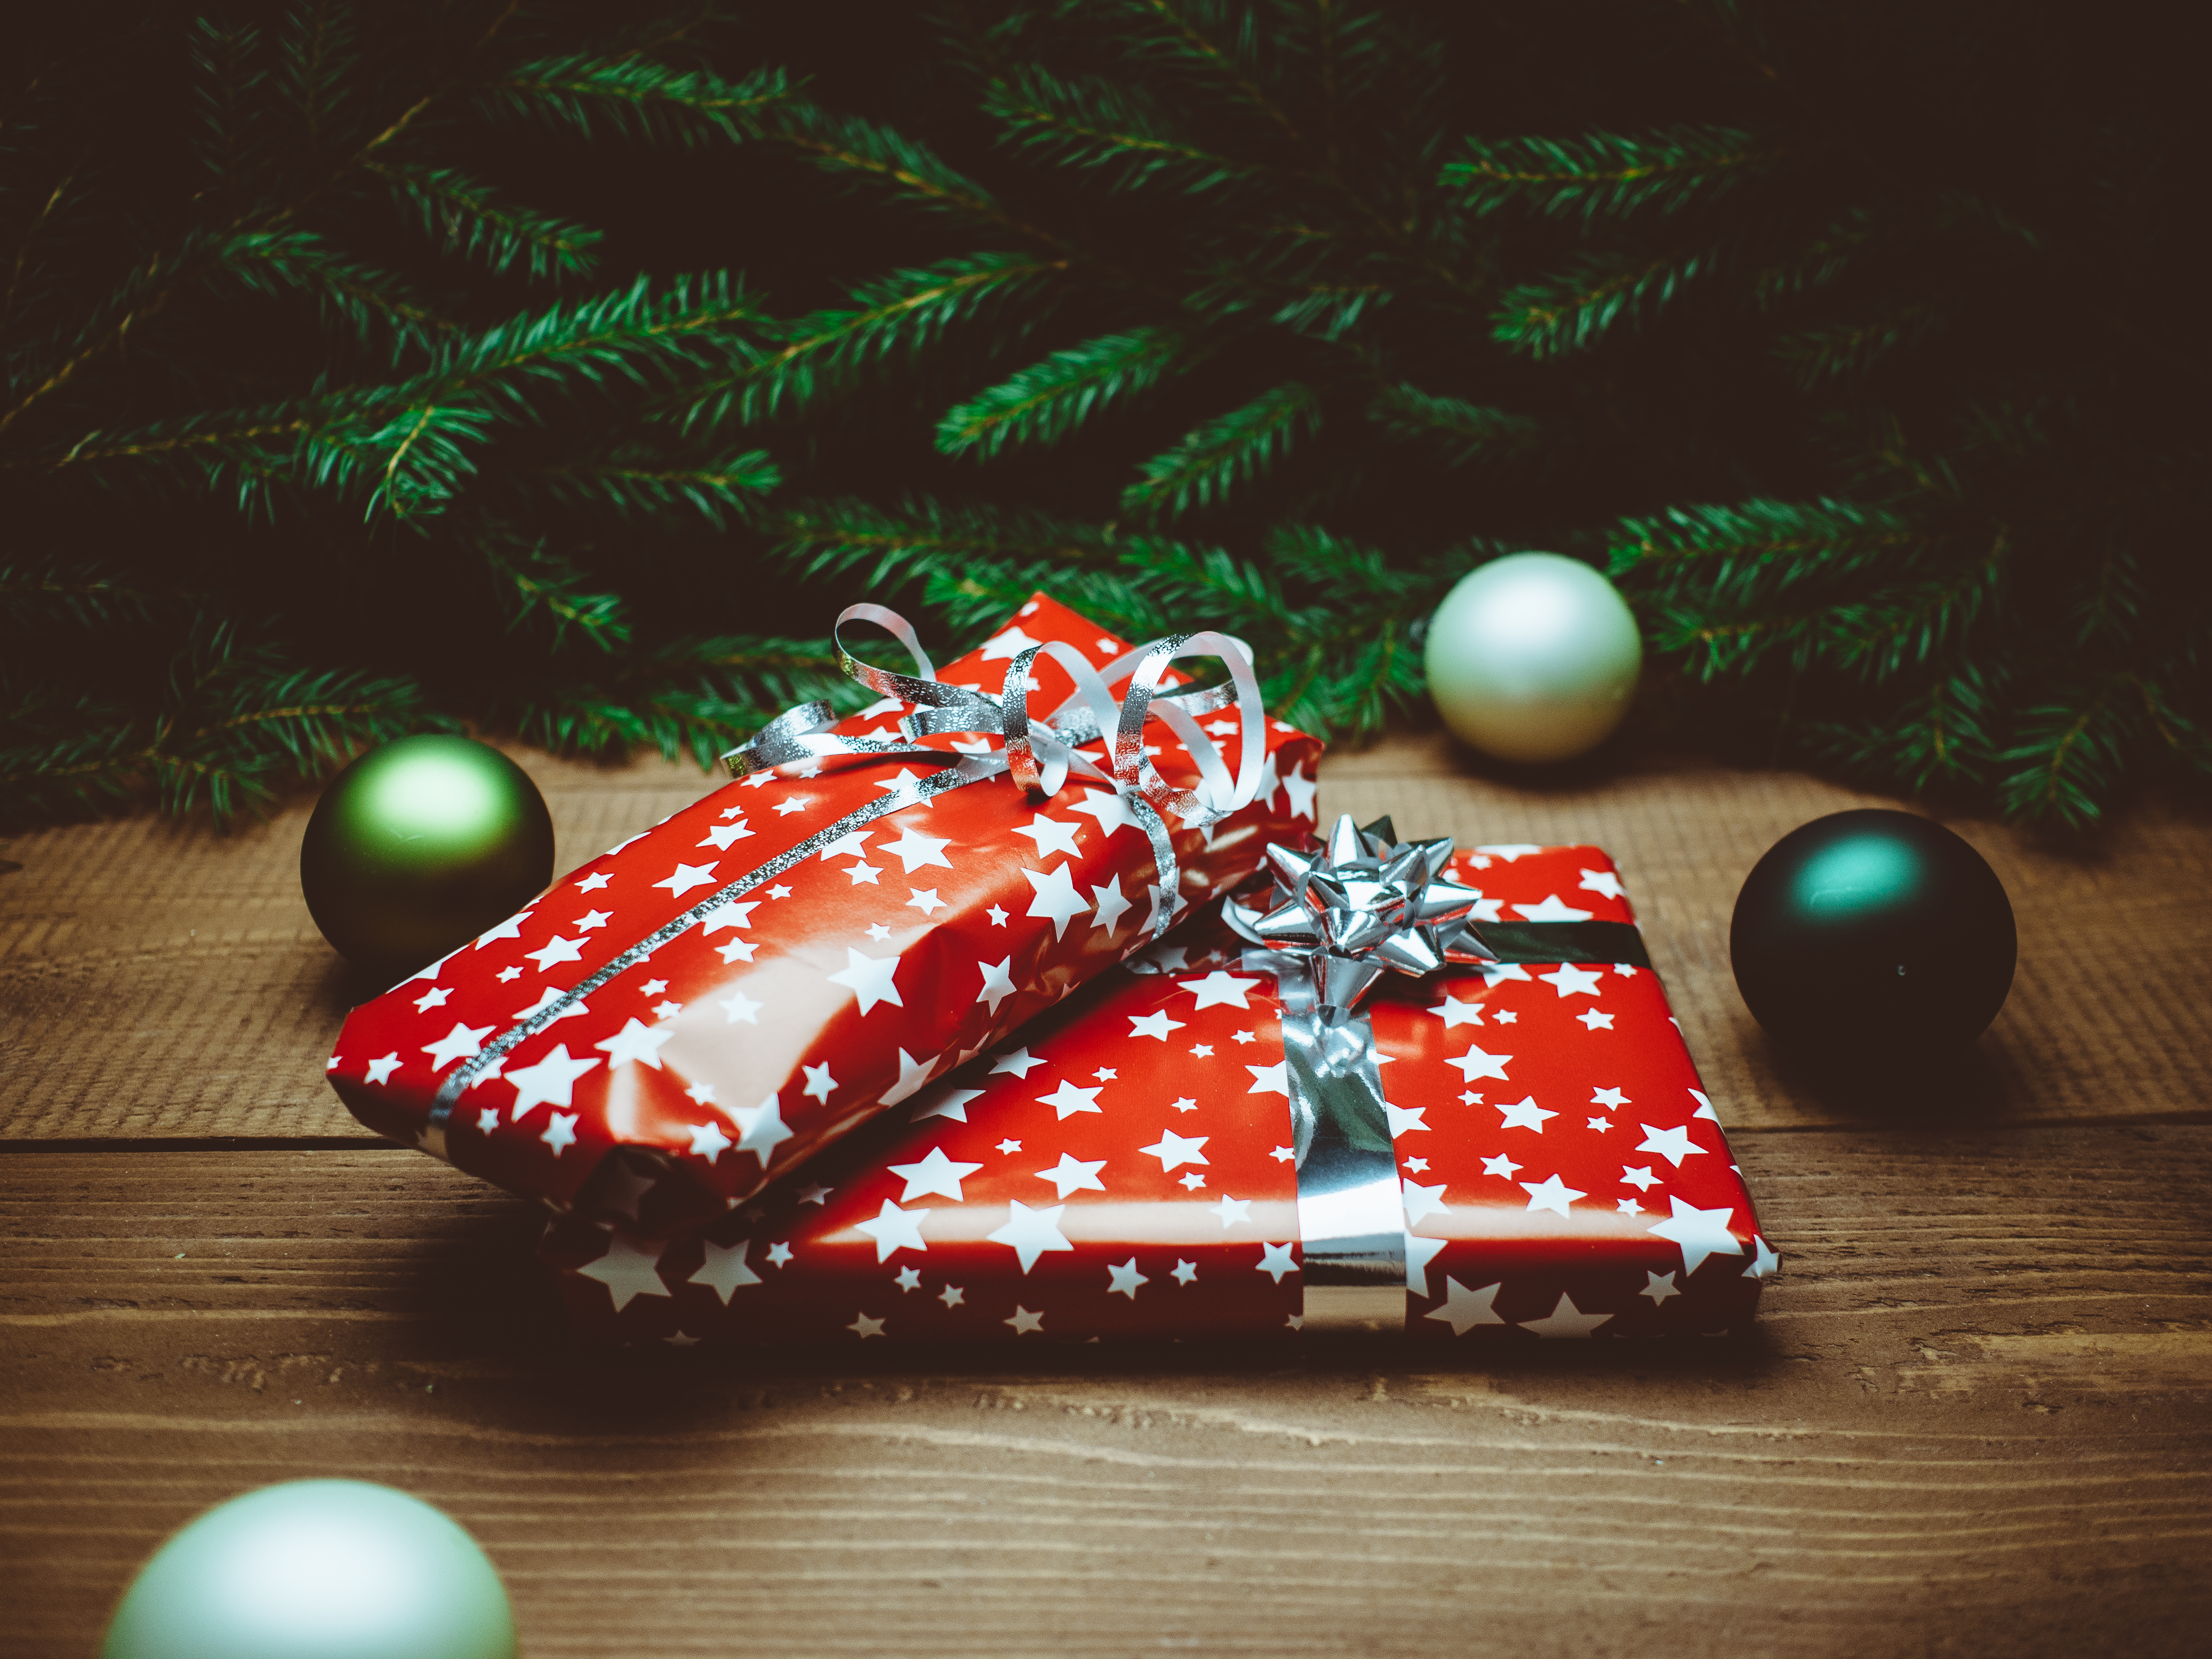 Free stock photo of red, ball, present, green